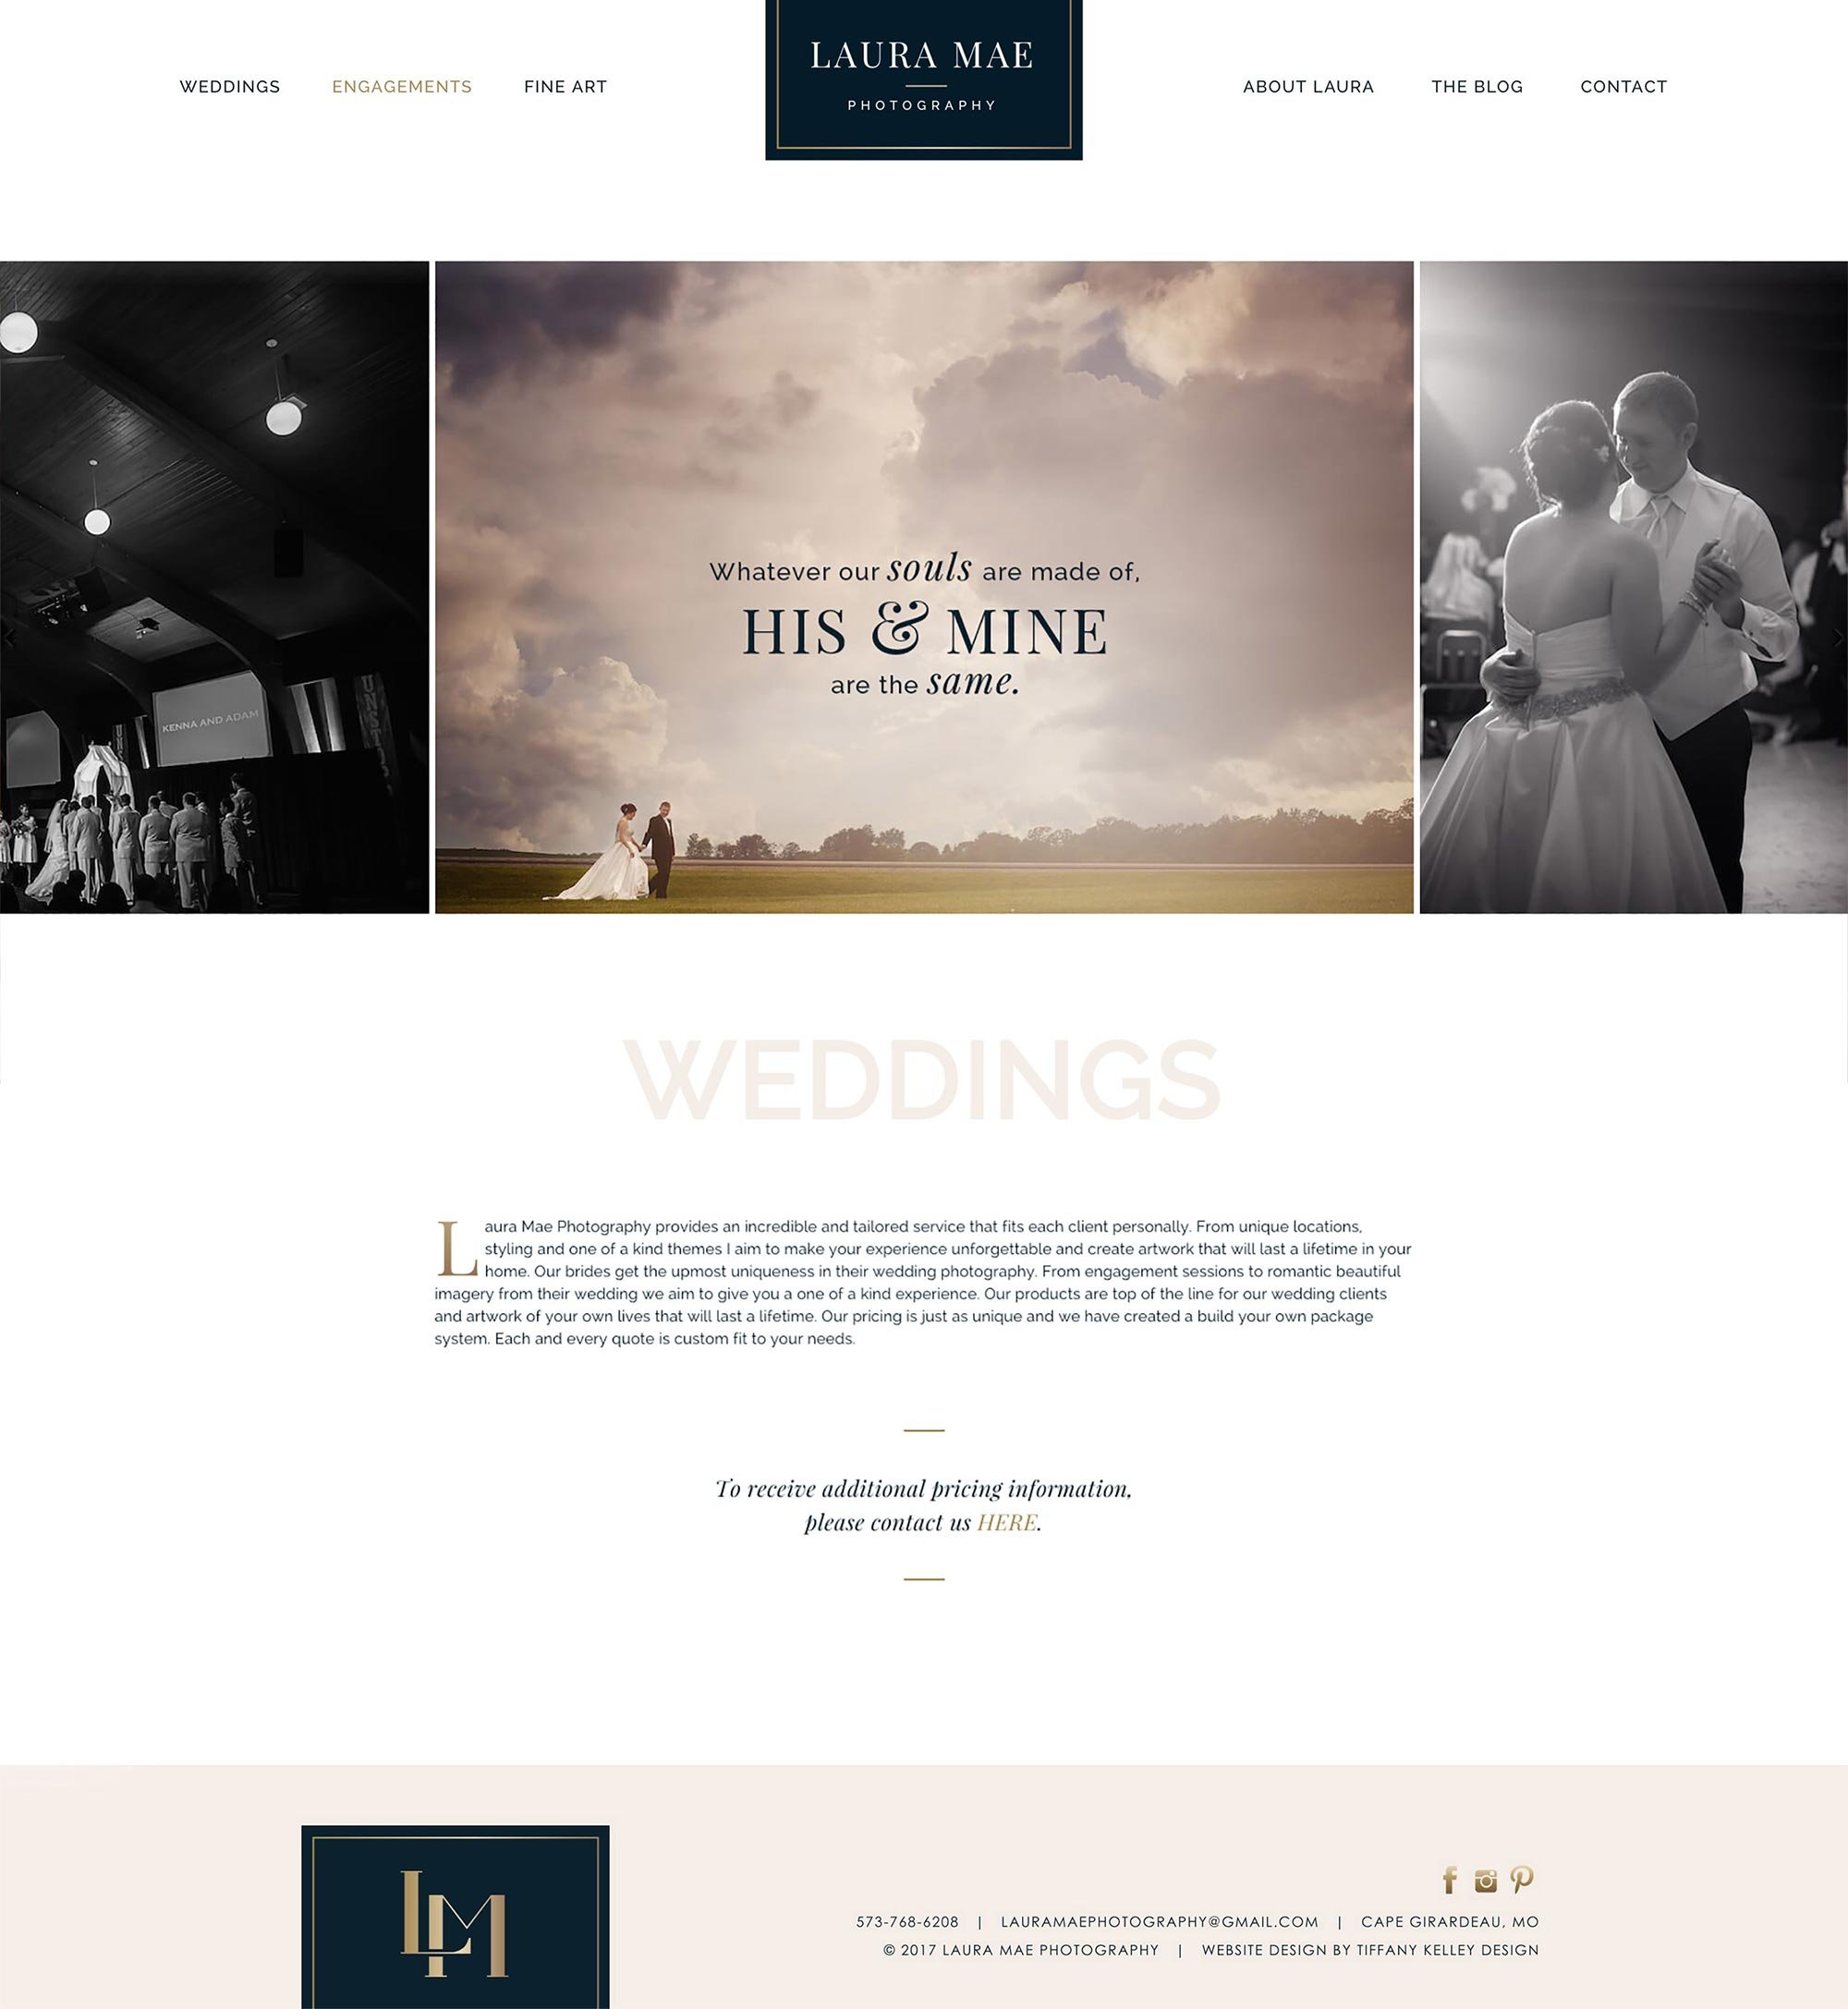 weddings web design laura mae photography